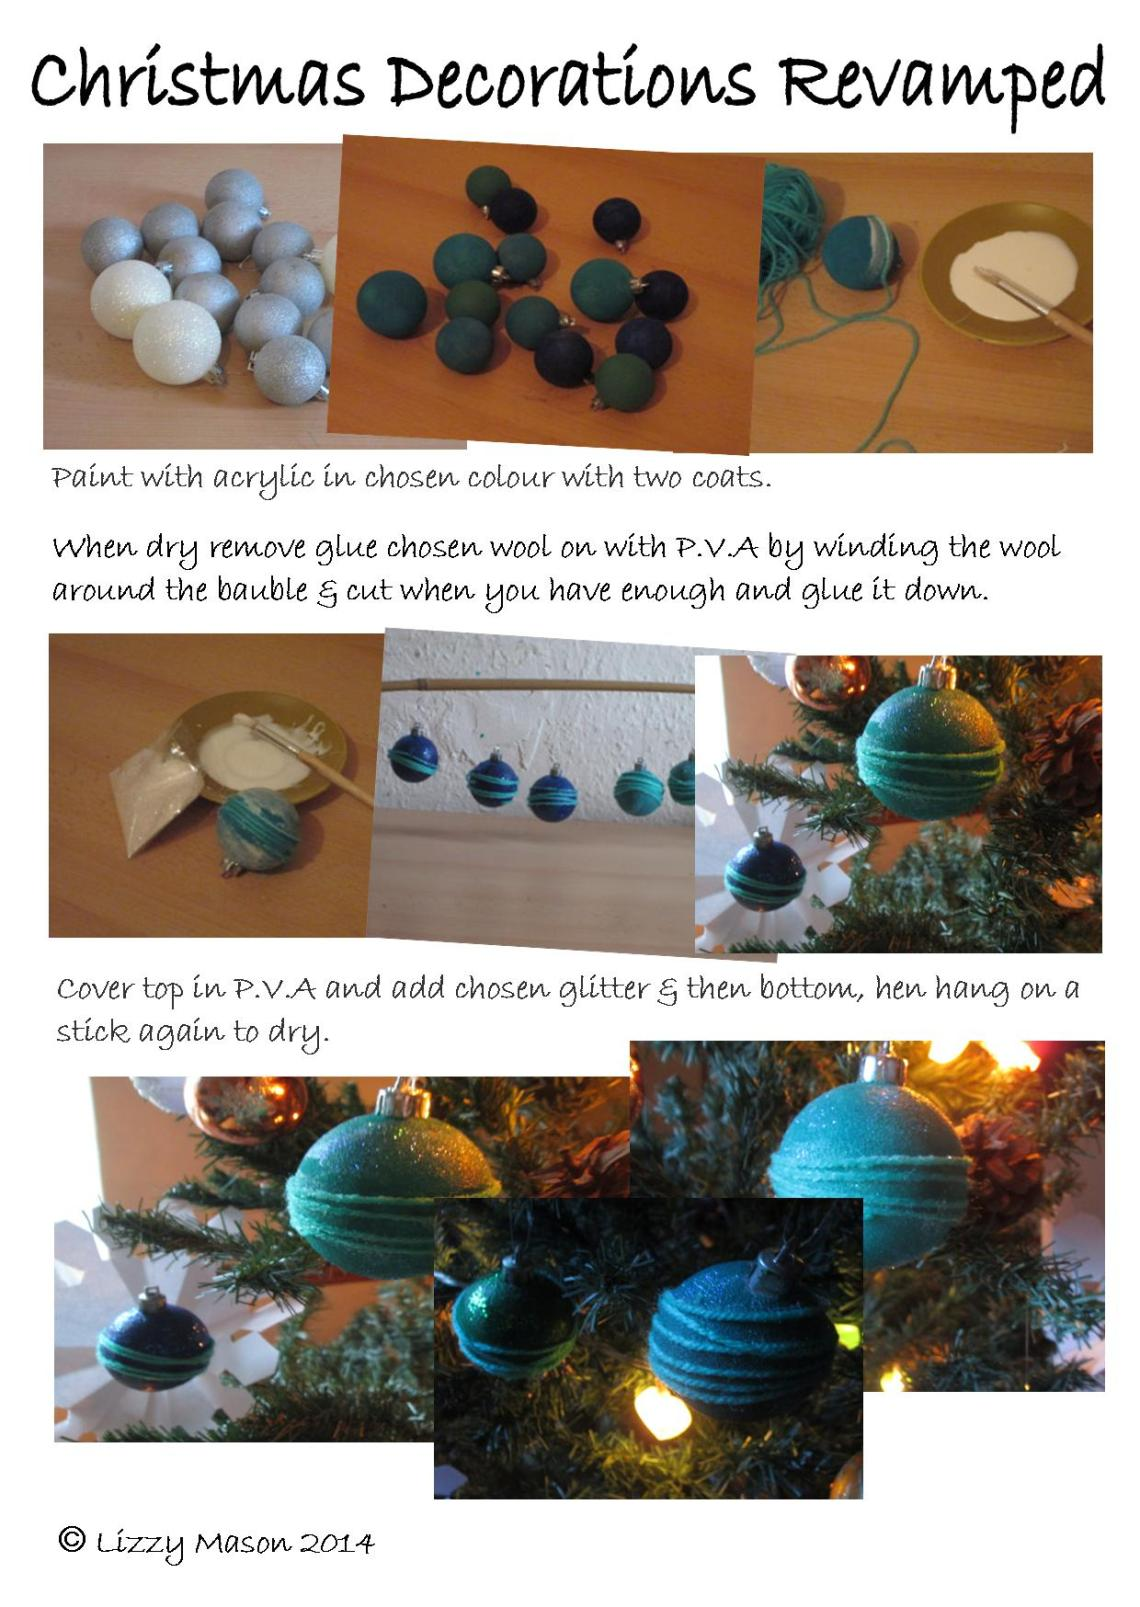 Christmas Decorations Revamped 1